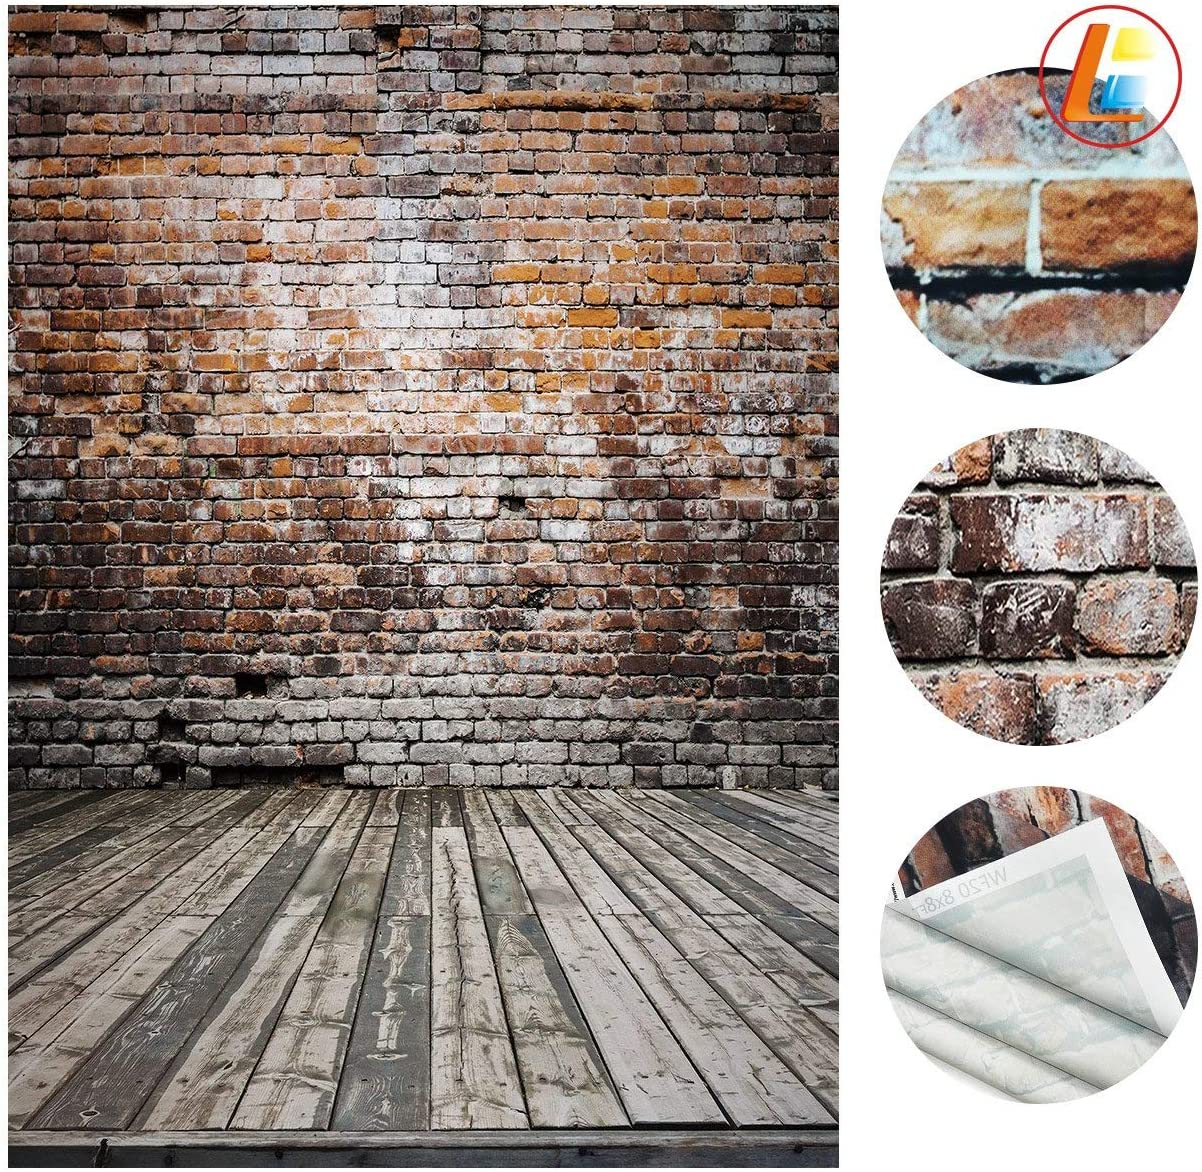 LB Red Brick Wall Background for Photography 10x10ft Vinyl Wood Floor Photography Backdrop for Wedding Smash Cake Birthday Party Portraits Photo Booth Backdrop